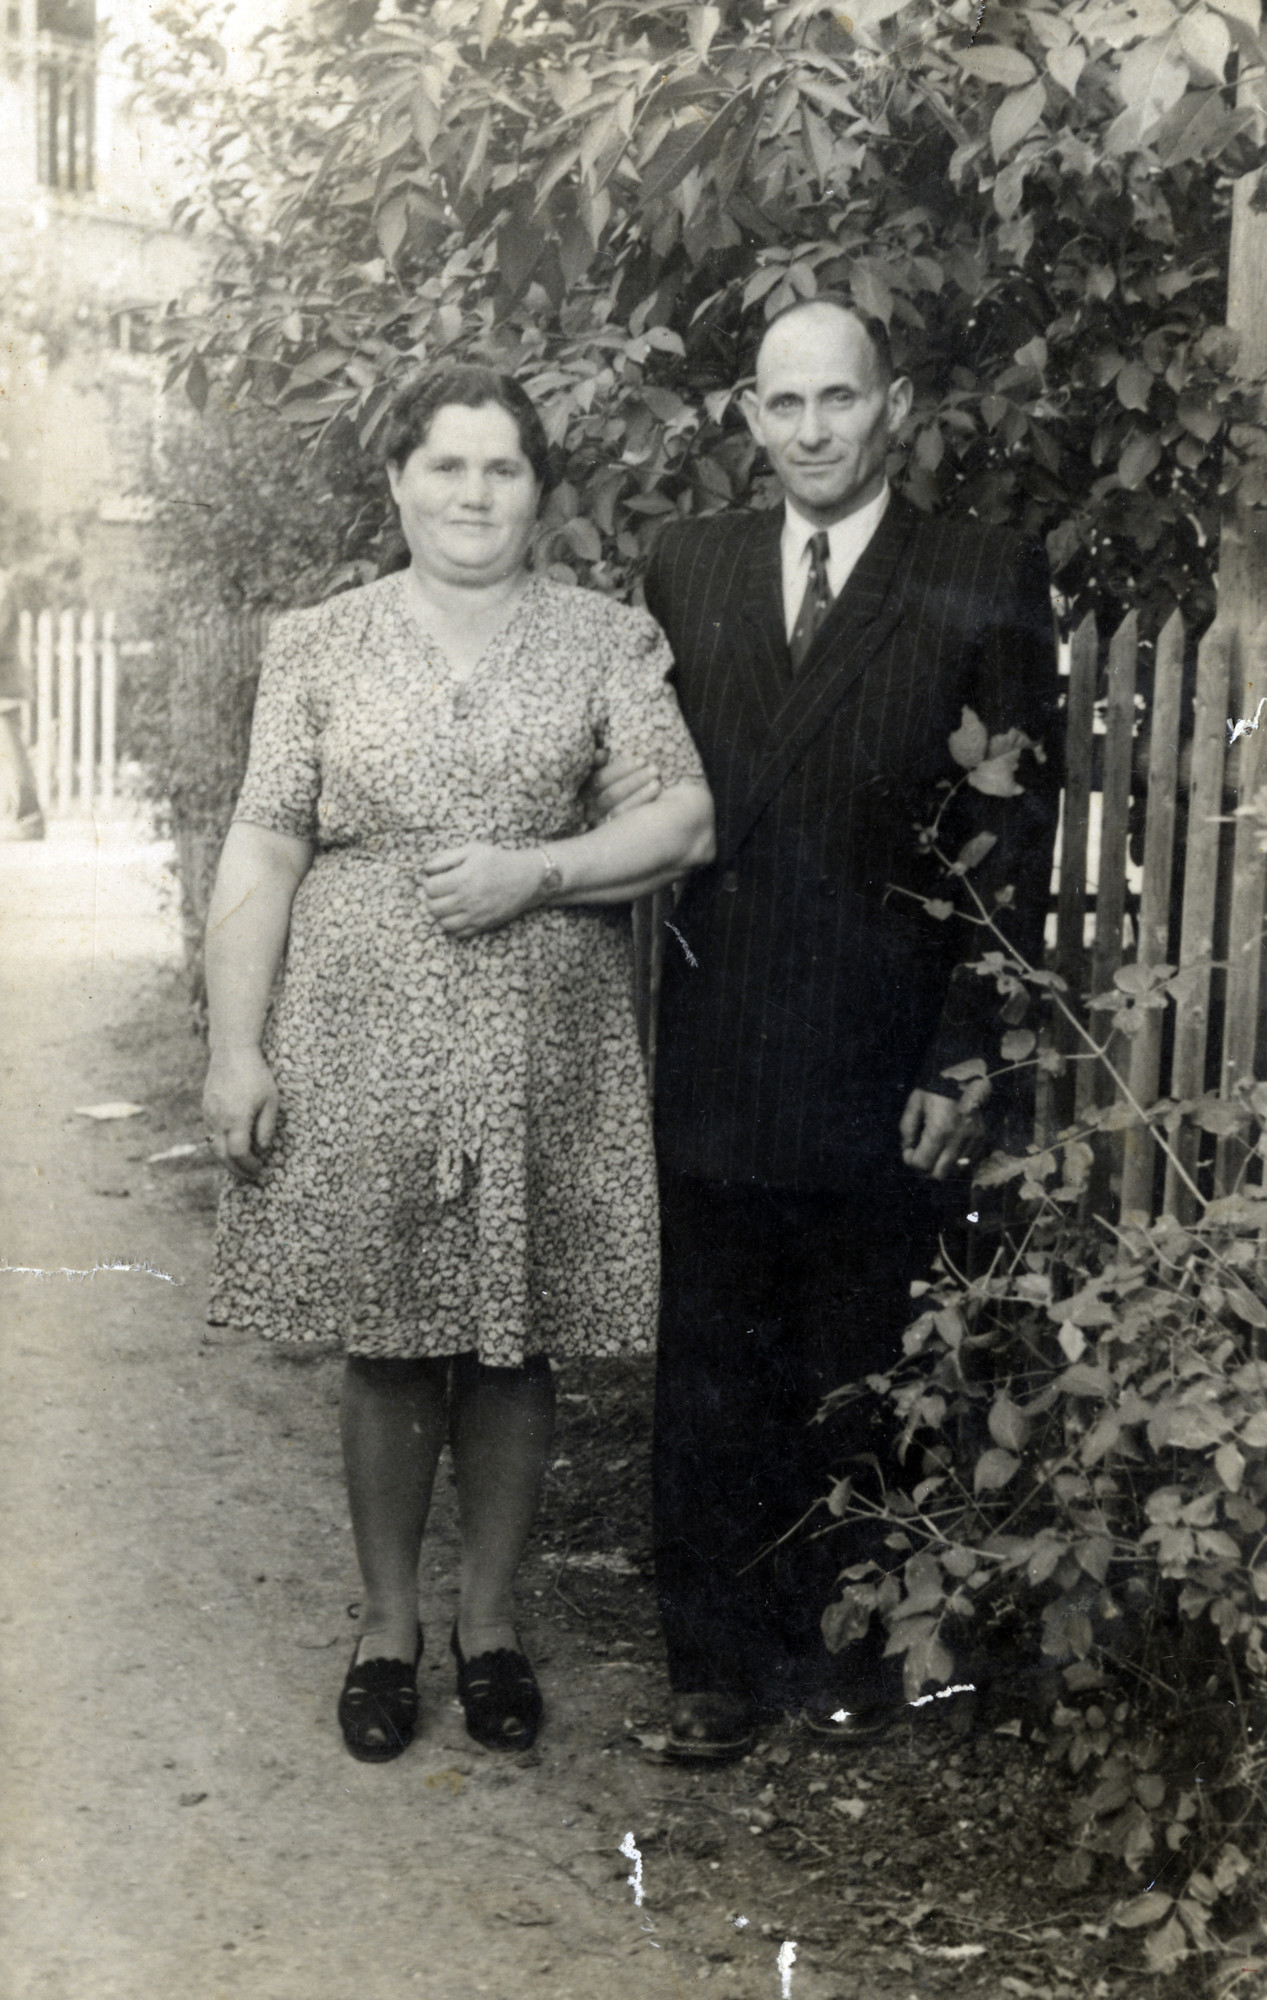 A Polish Jewish couple outside their house in the Heidenheim displaced persons camp.  Pictured are Fania and Avram and Rochman.